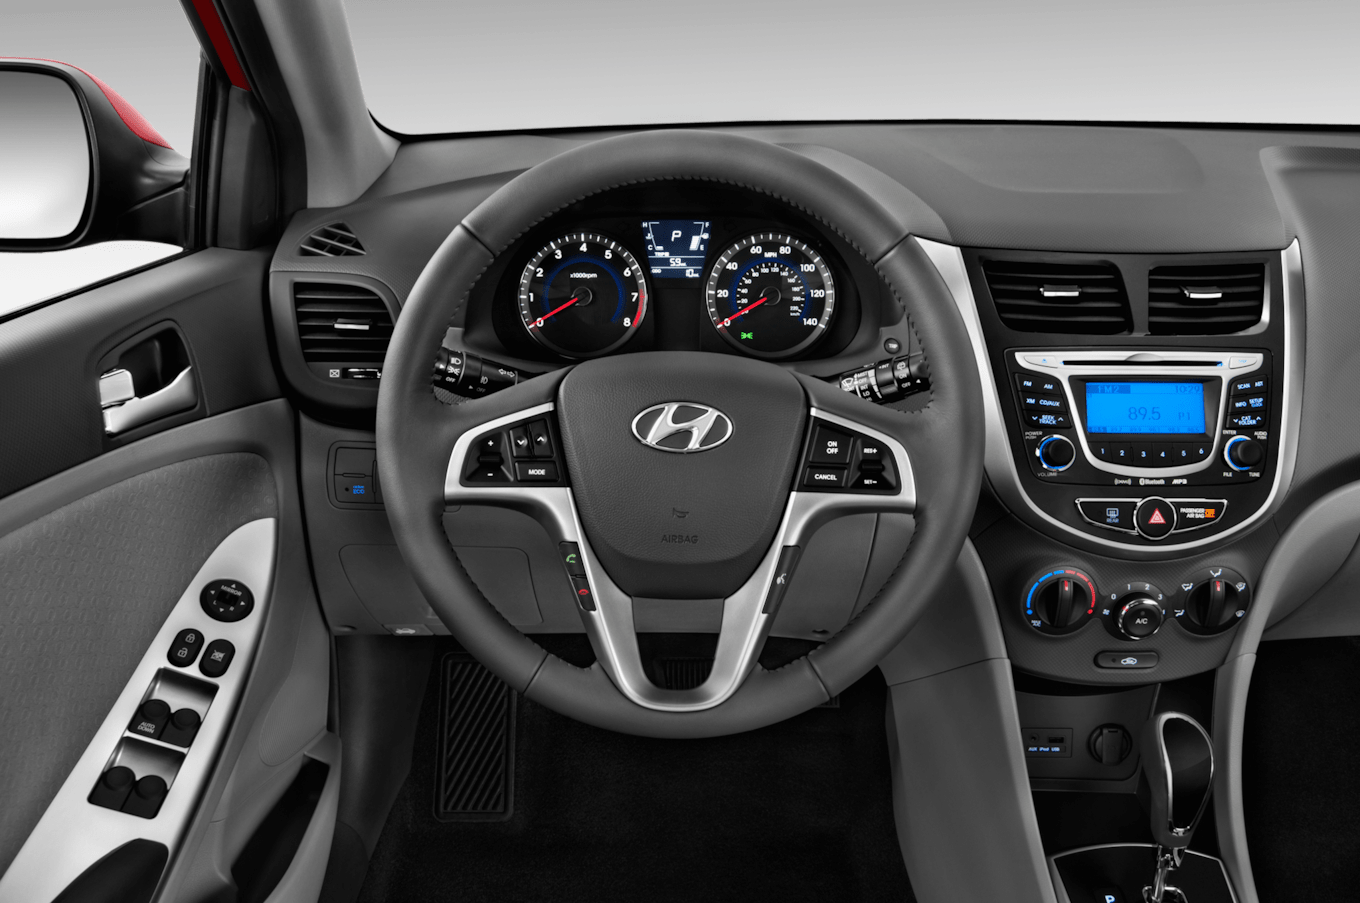 Style name 4dr sdn auto gls. 2015 Hyundai Accent Reviews - Research Accent Prices